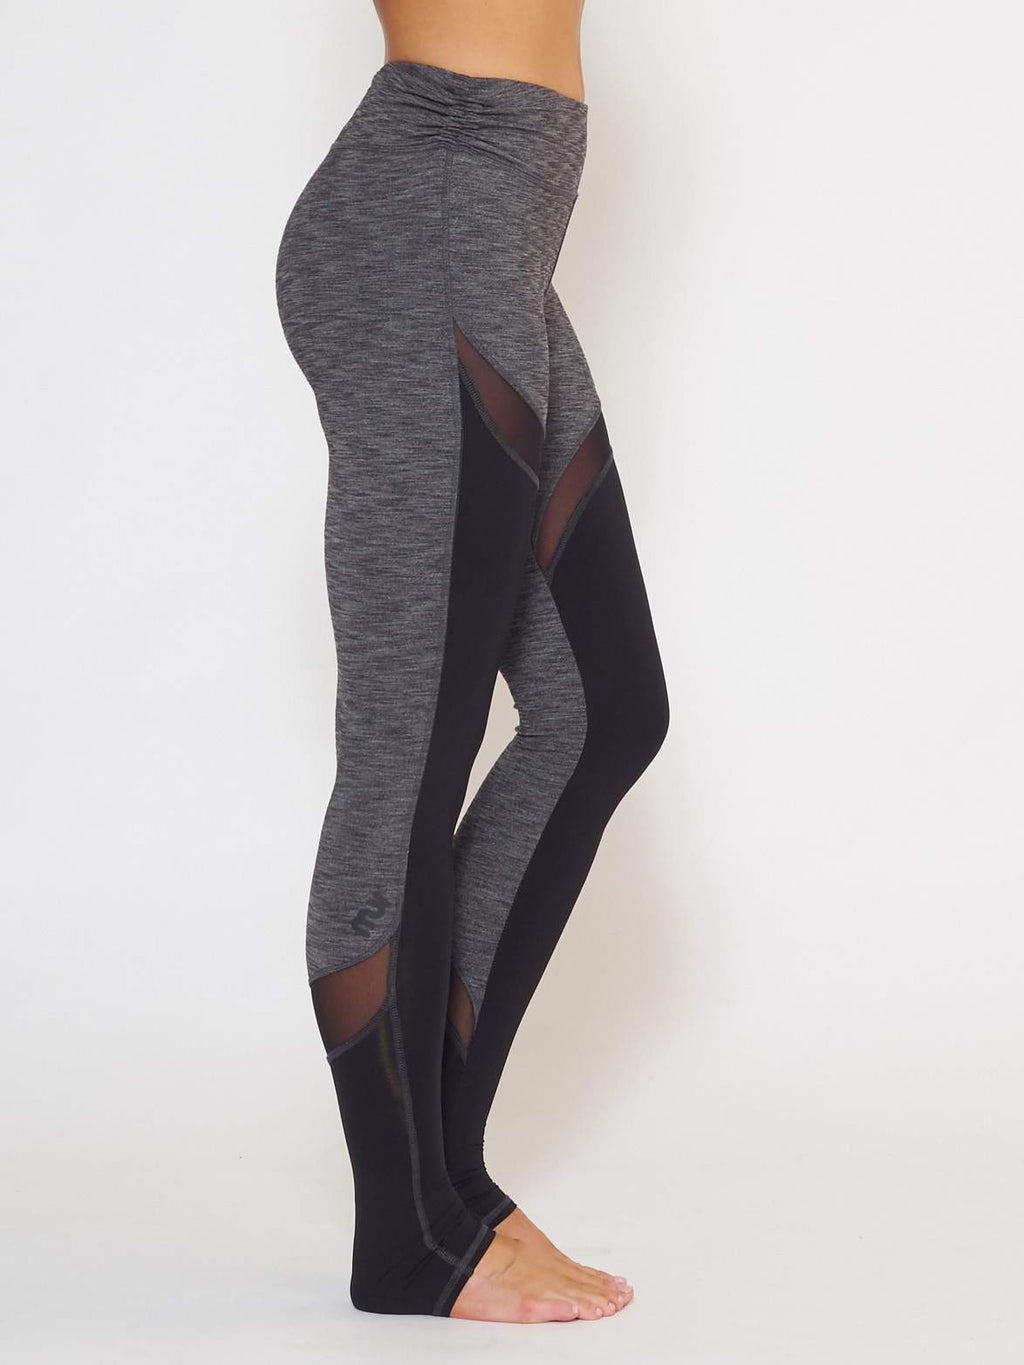 MUV Sportswear Long Sleeve Top GALE Full-Length Legging - Steel